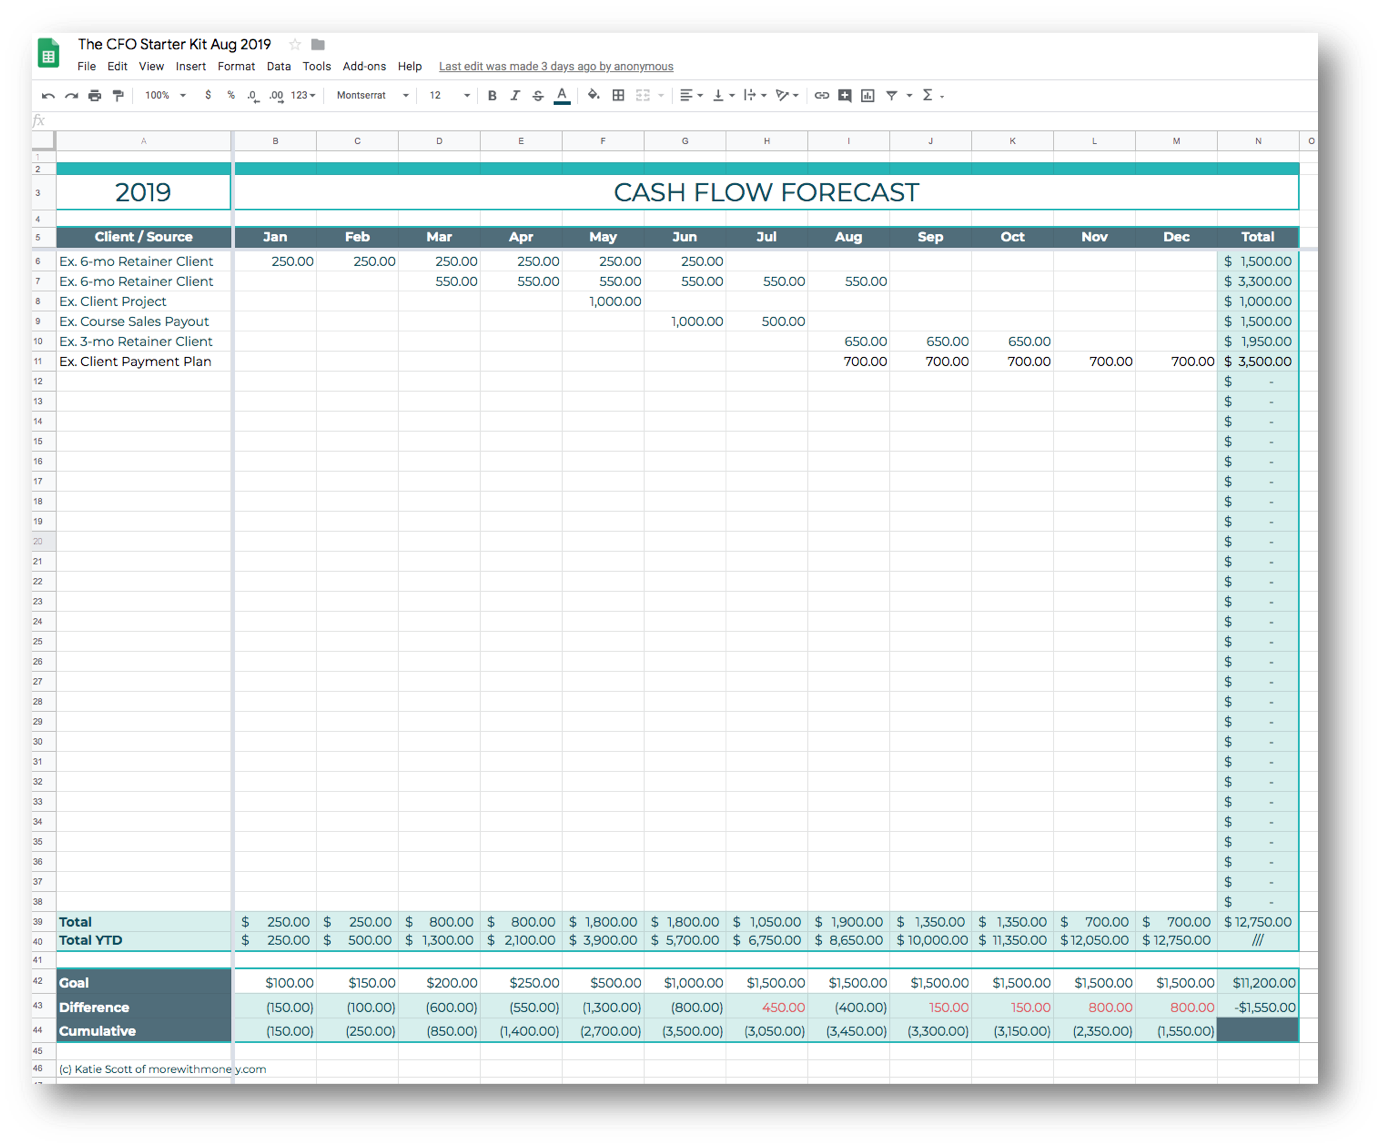 CEO Day Routine - cash flow forecast tool screenshot.png